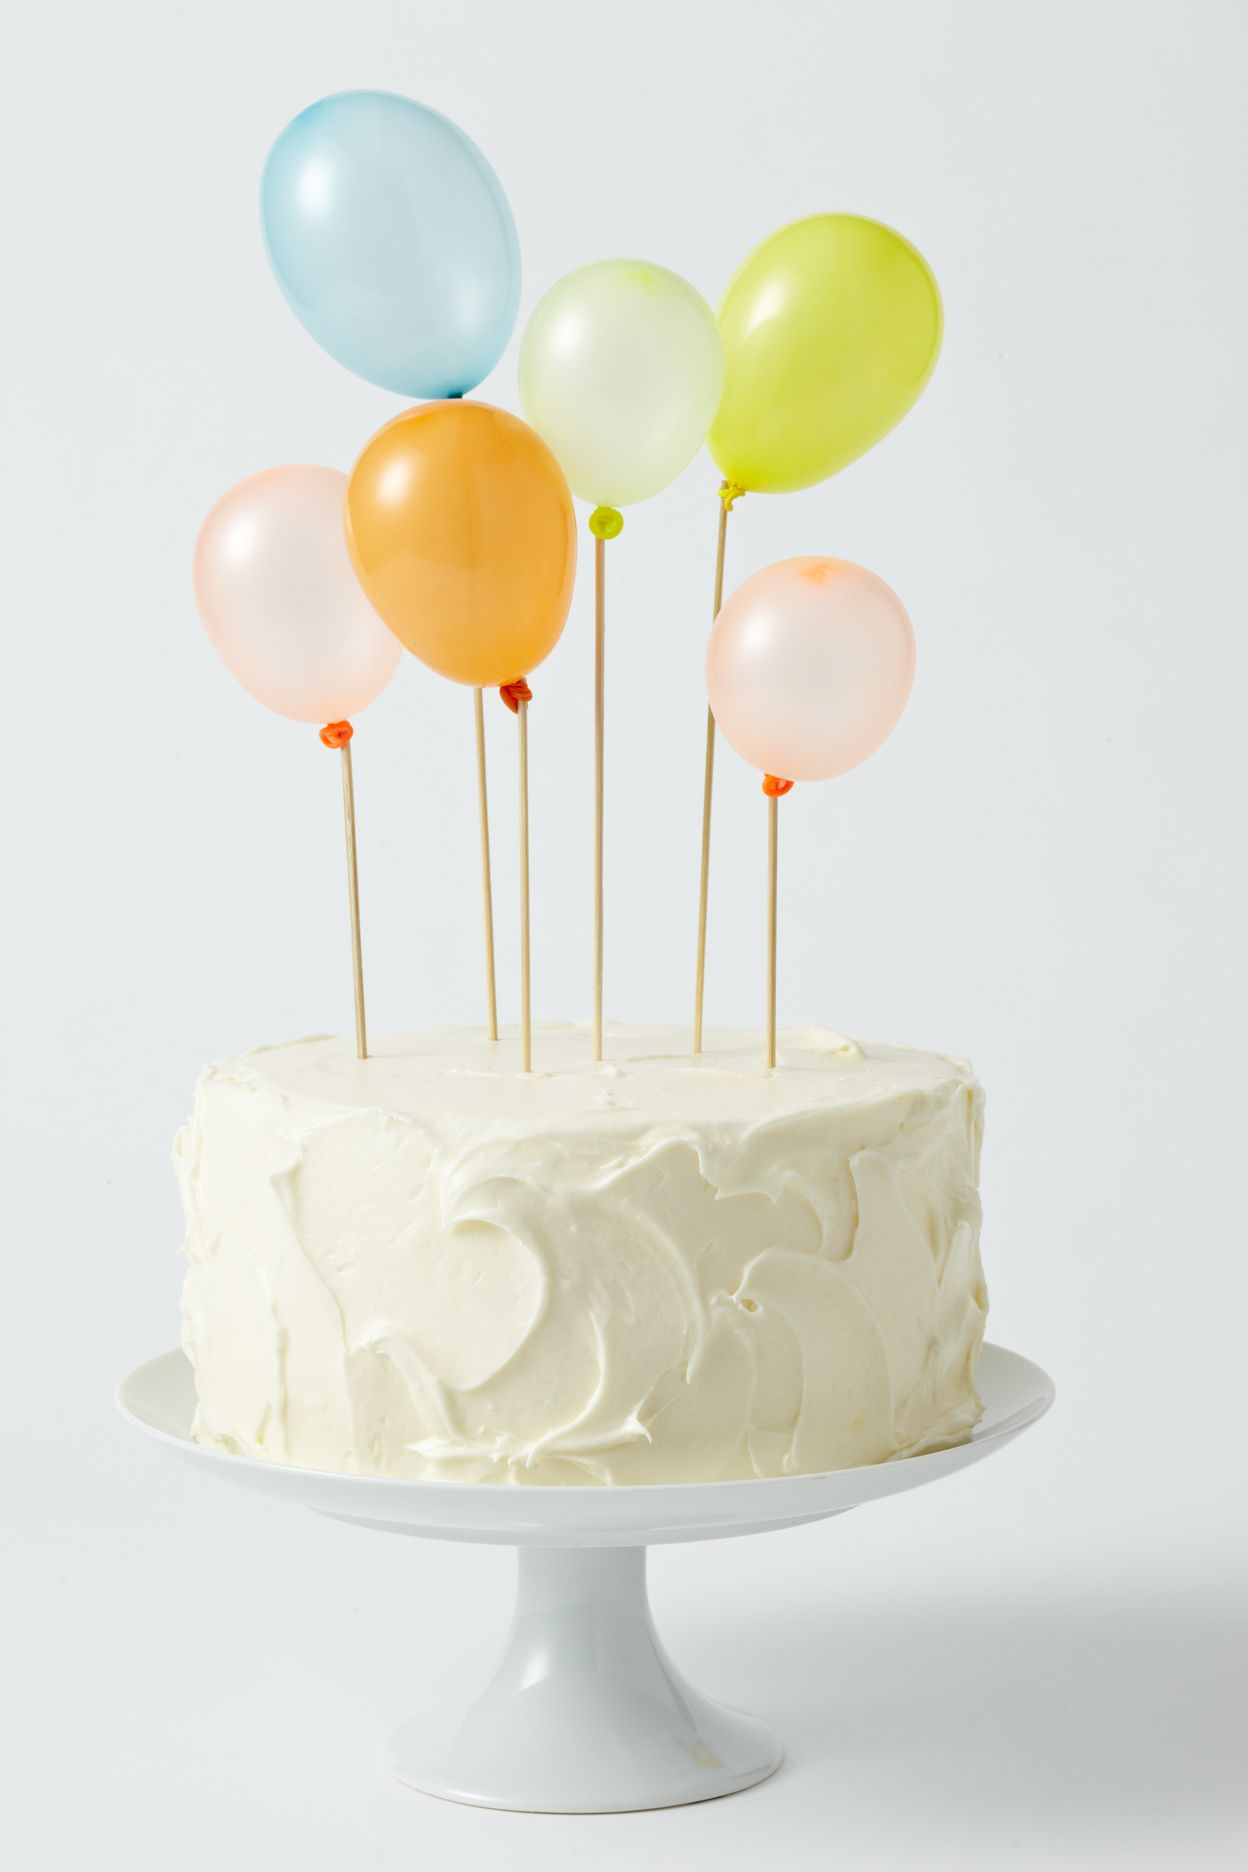 Balloon Birthday Cake Diy Projects Crafts Cake Ideasinspiration Pinterest Cake